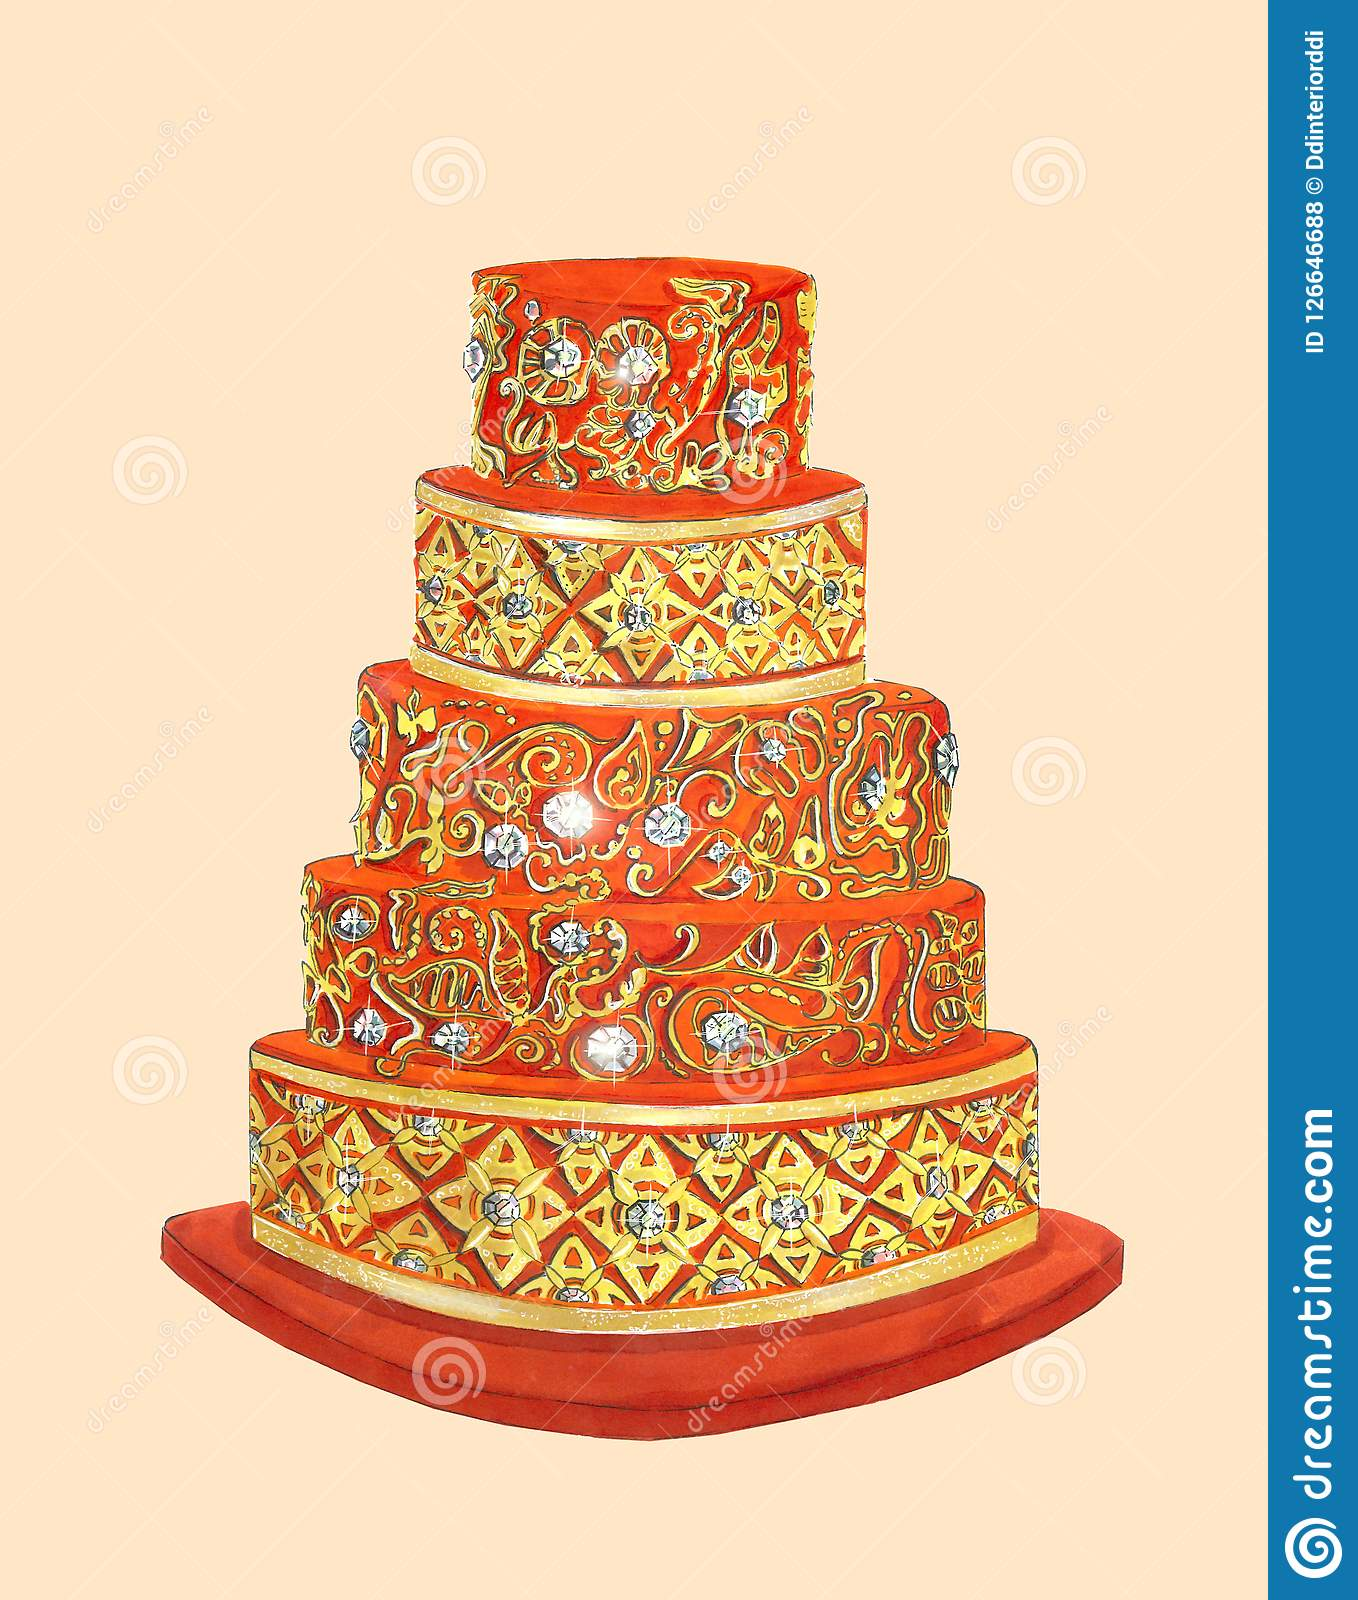 Incredible The Red Cake With Gold Details And Gems Stock Illustration Funny Birthday Cards Online Alyptdamsfinfo